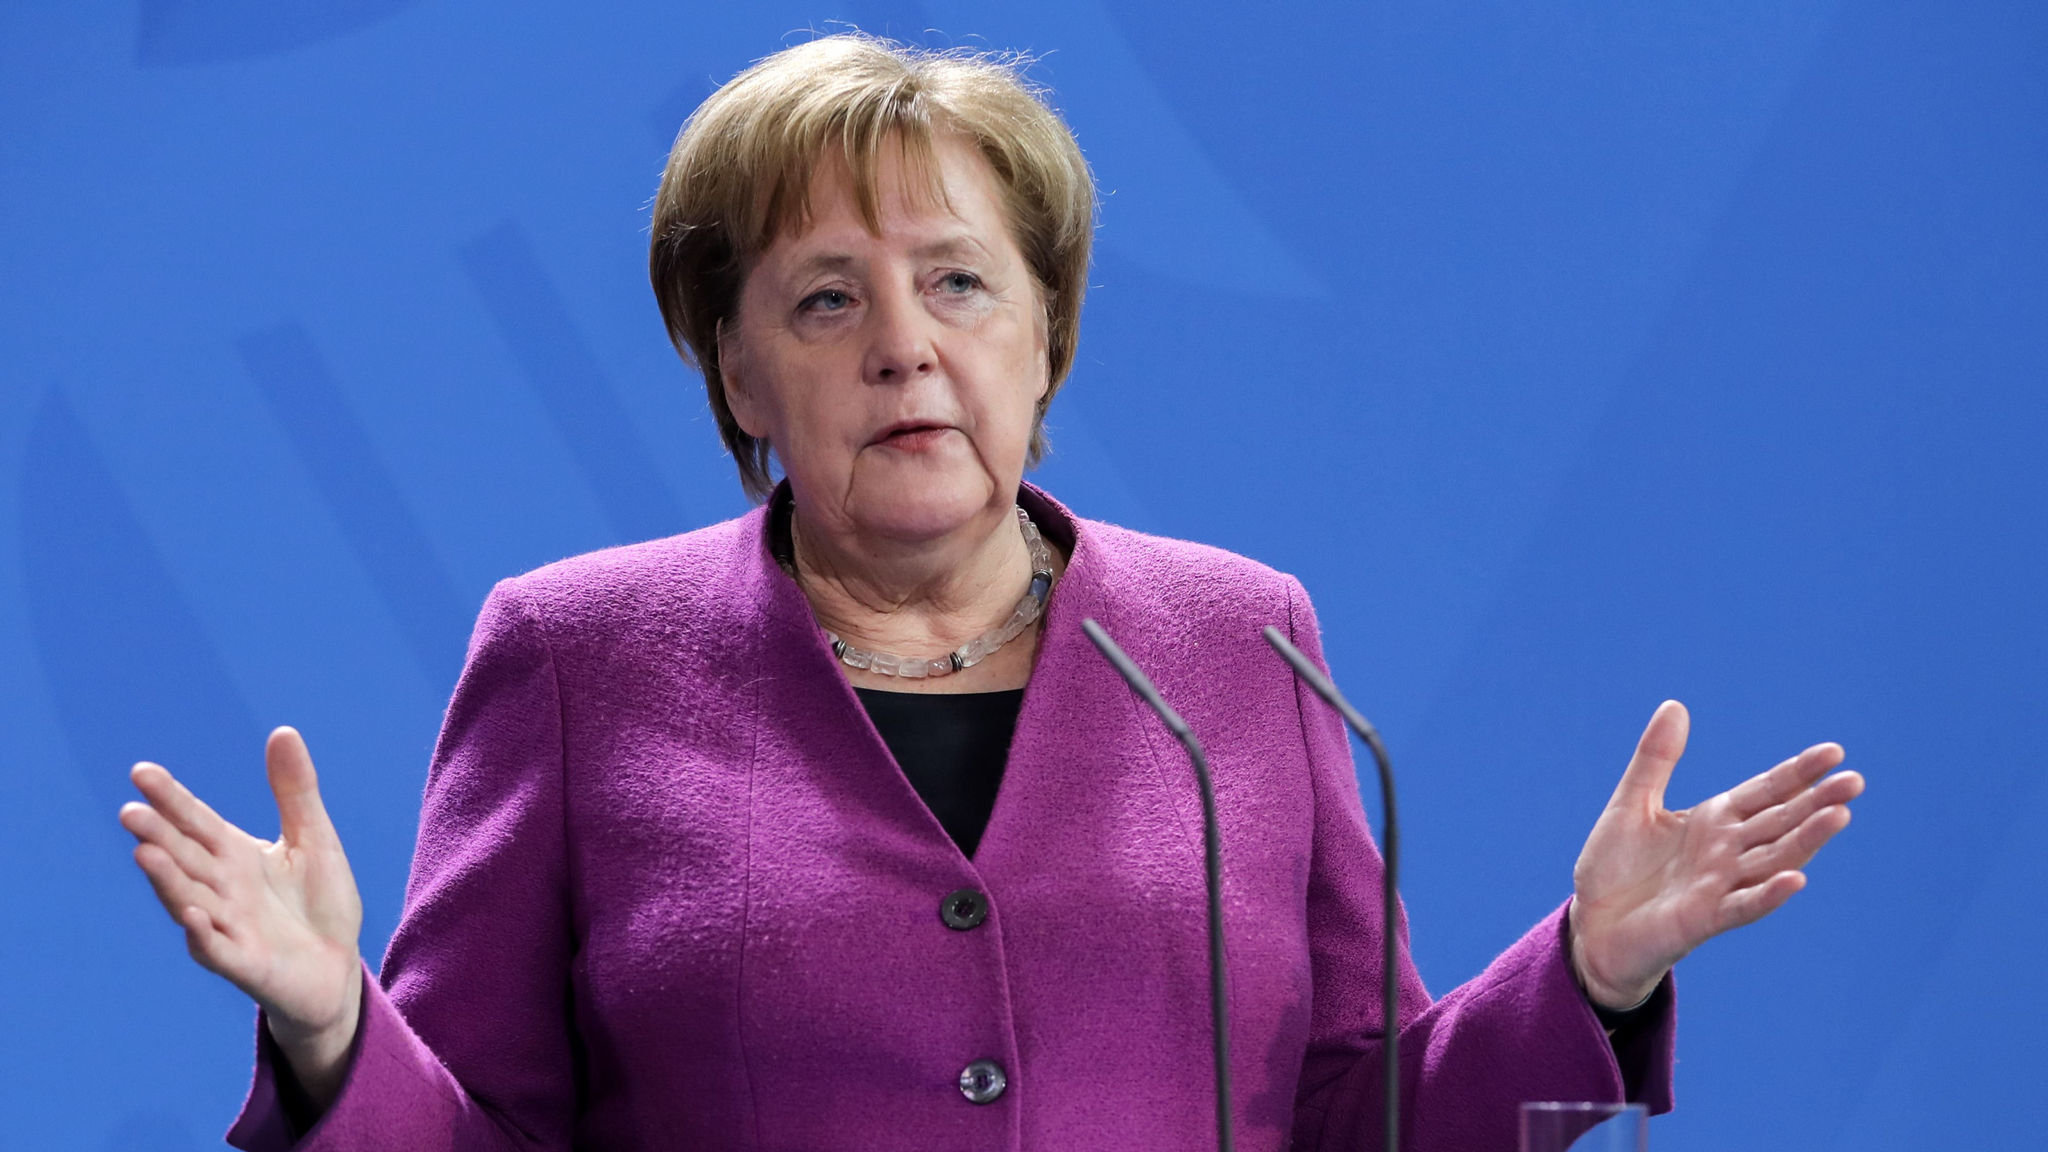 Angela Merkel urges EU to seize control of data from US tech titans